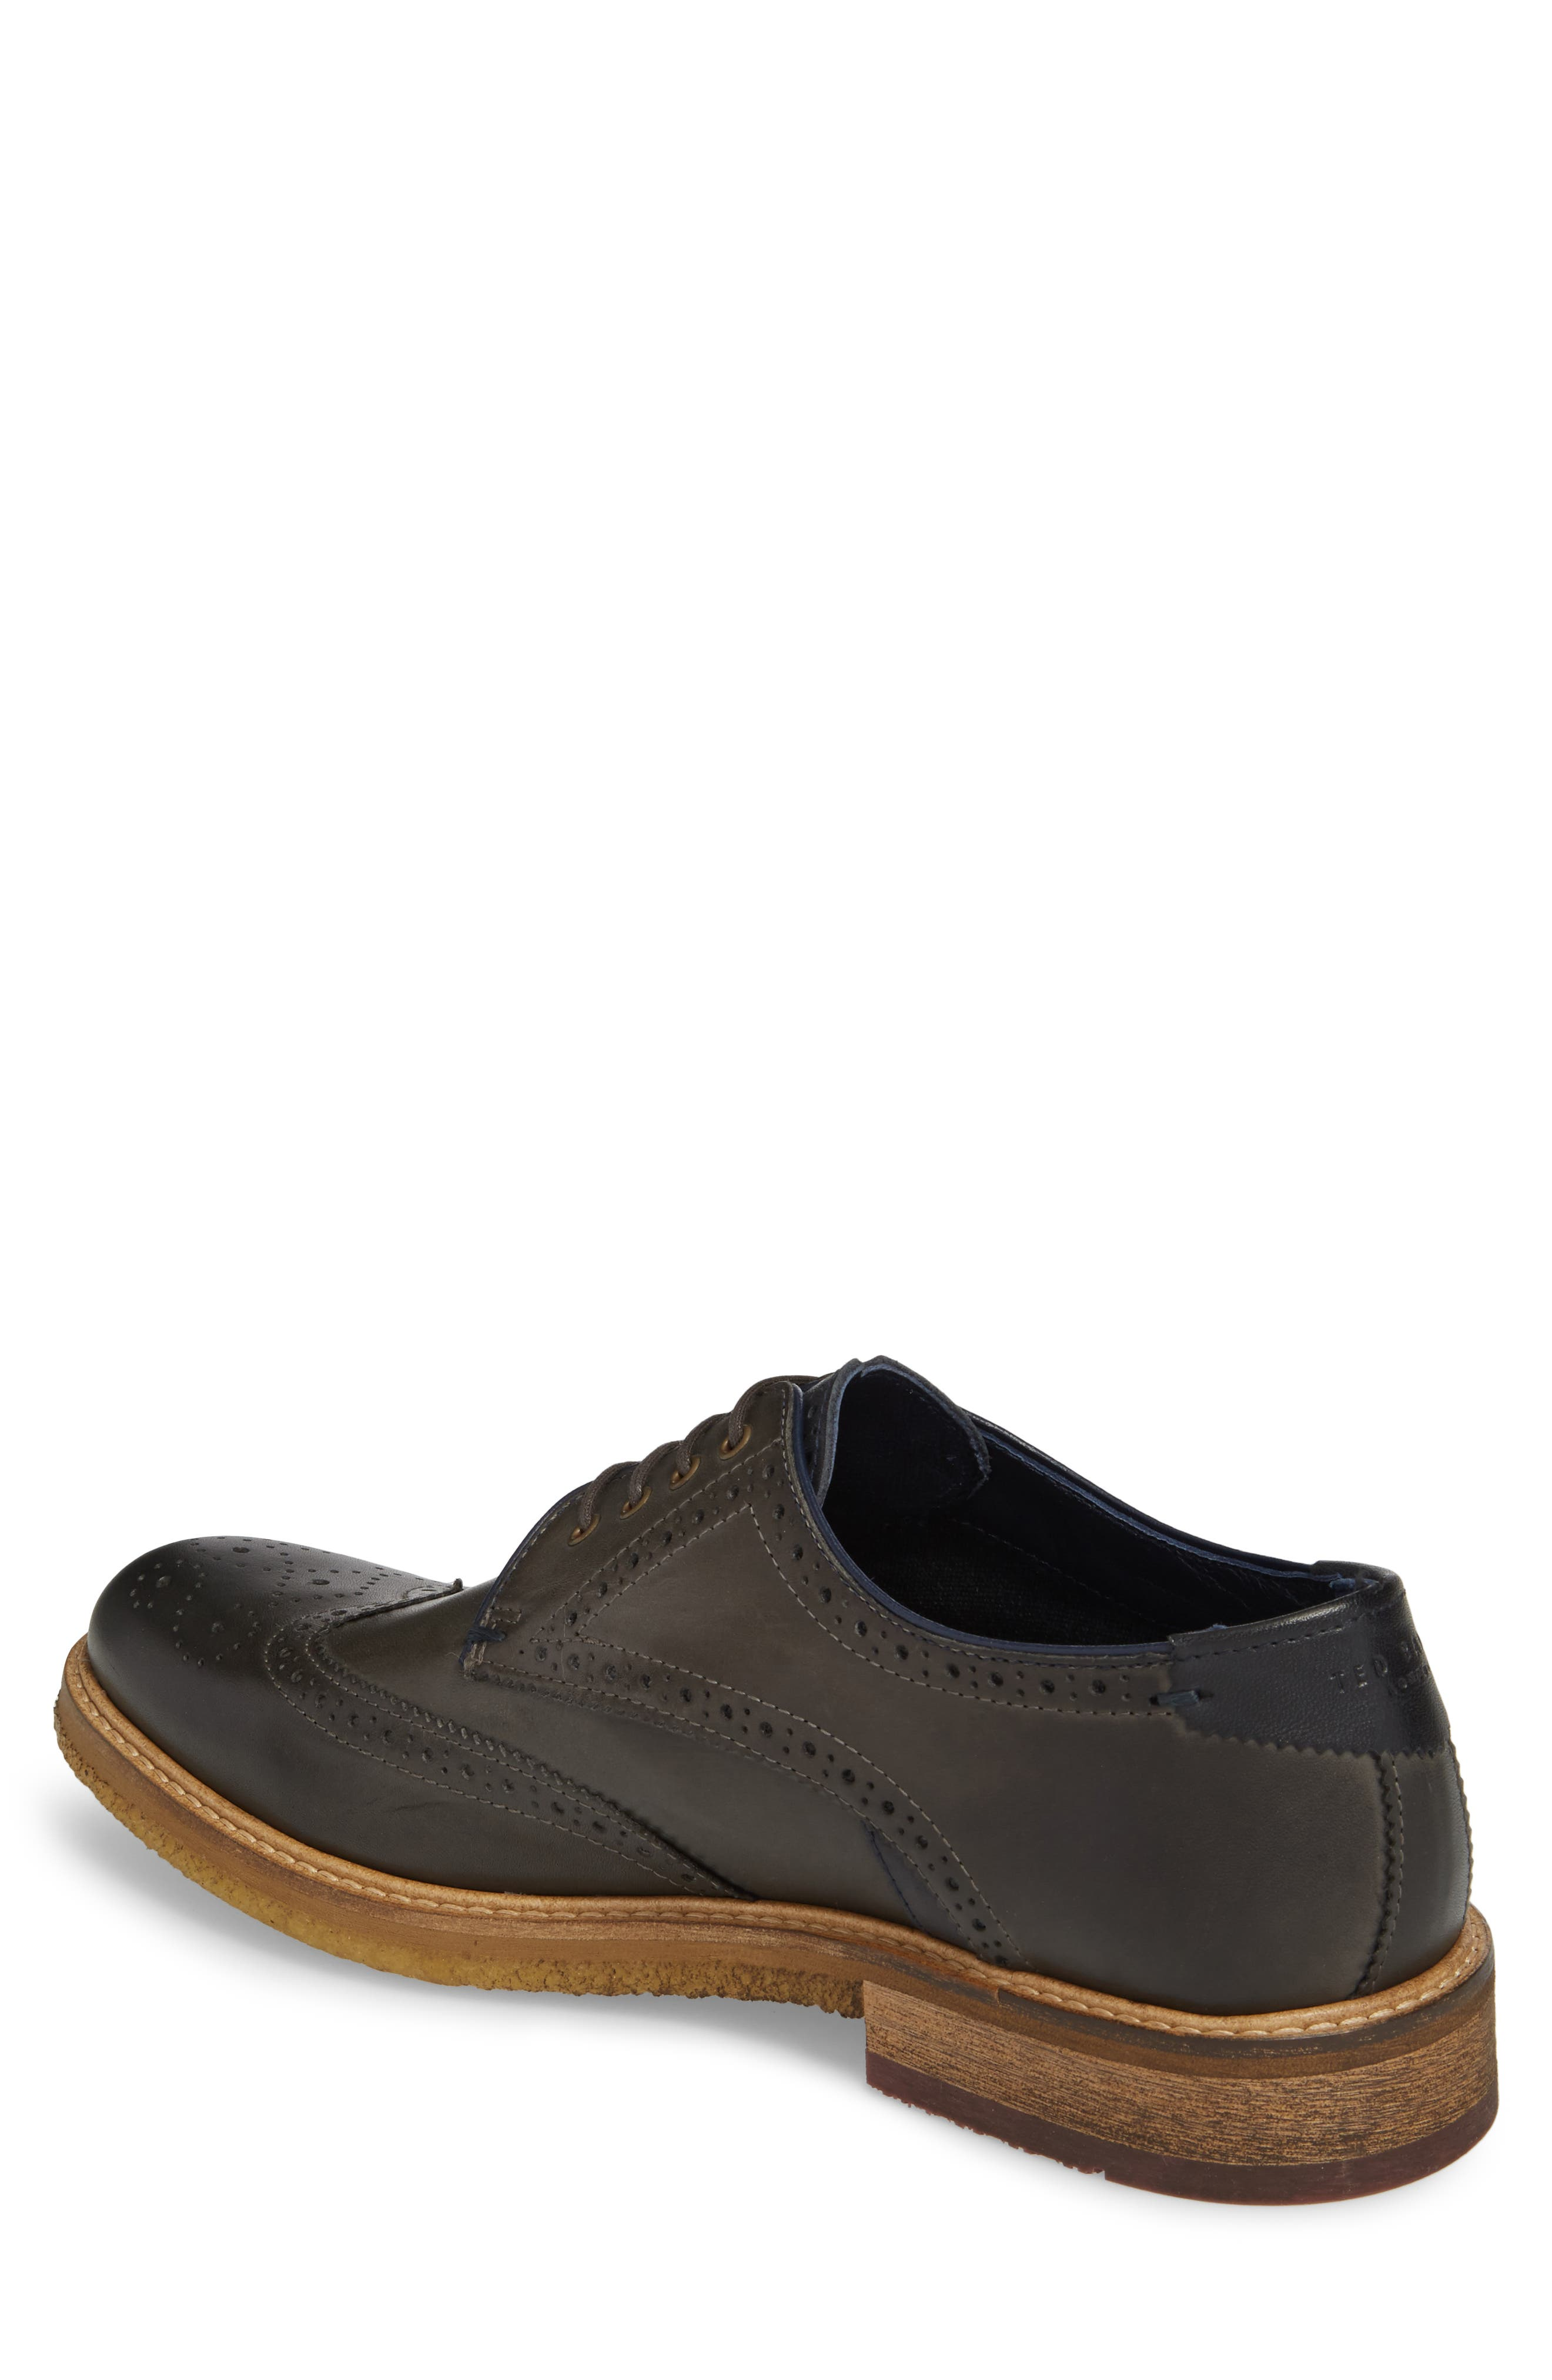 Prycce Wingtip Derby,                             Alternate thumbnail 2, color,                             031